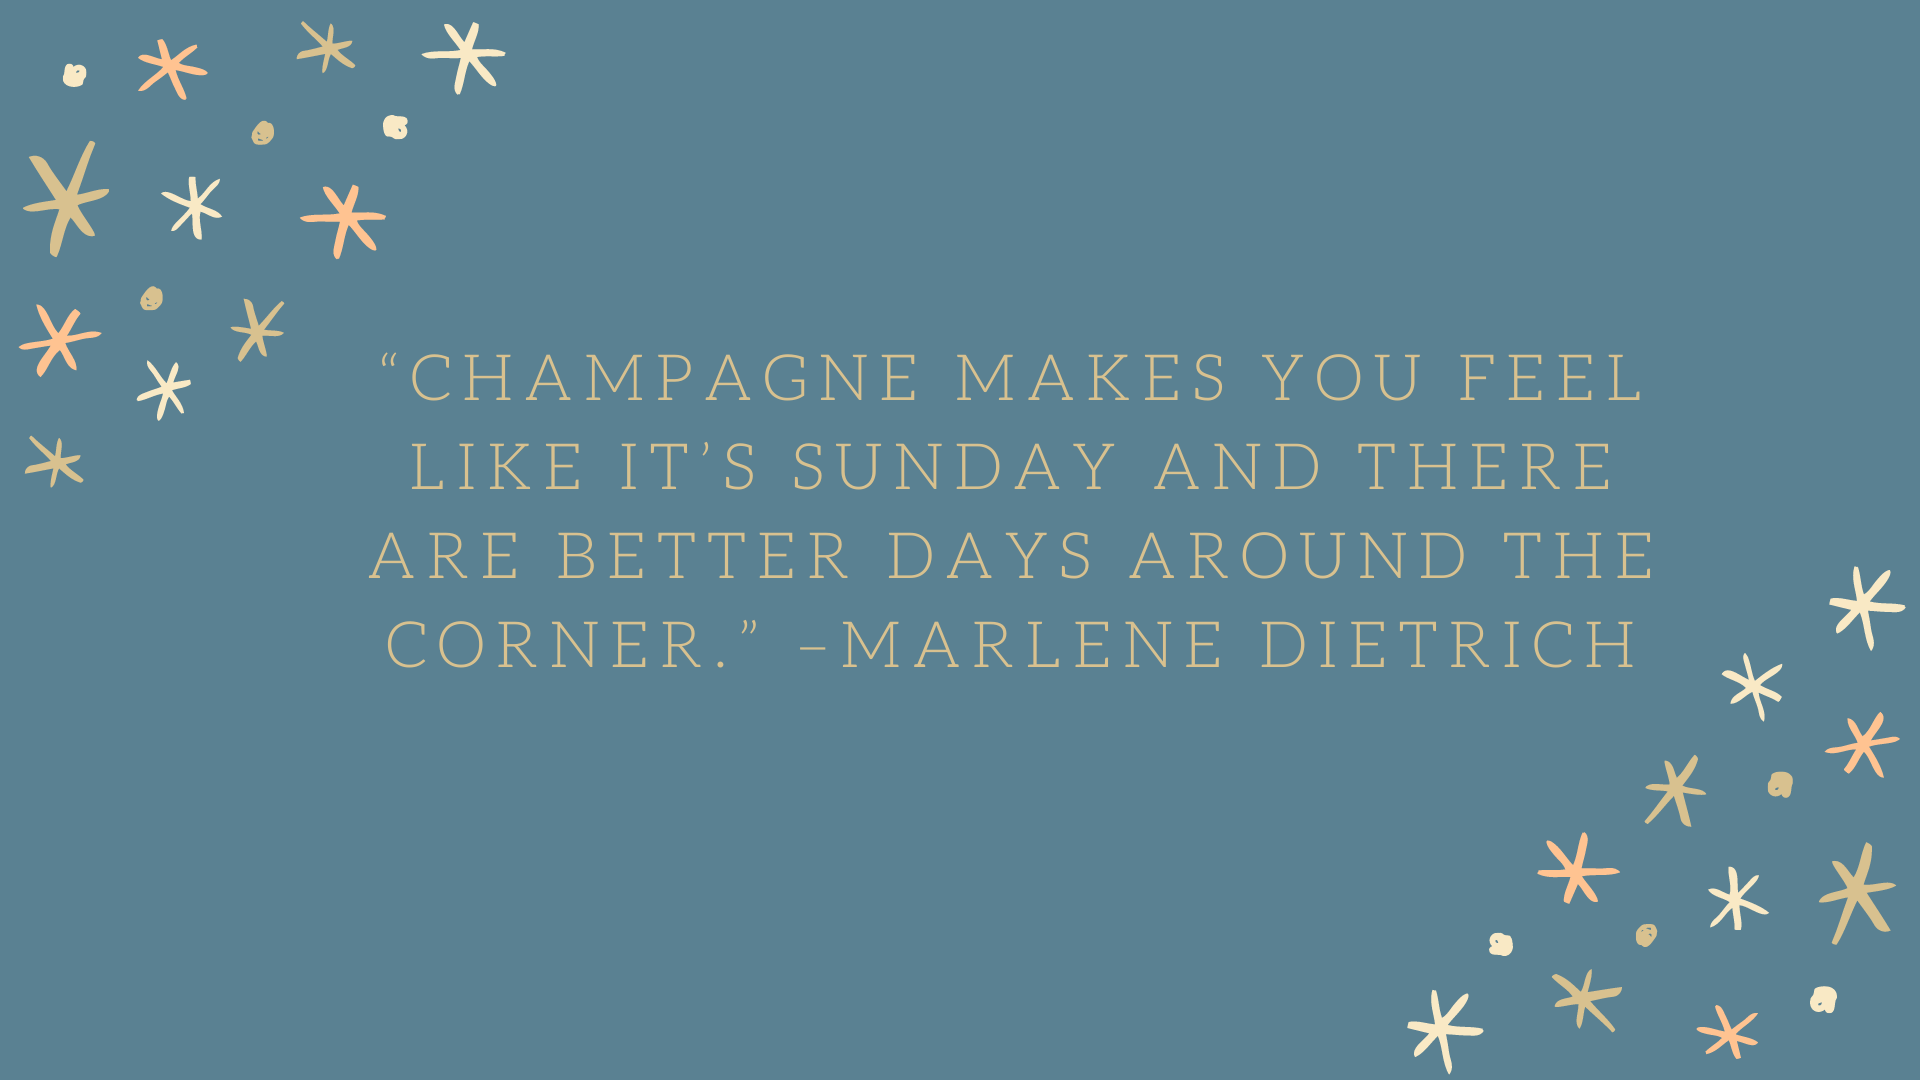 """Champagne makes you feel like it's Sunday and there are better days around the corner."" –Marlene Dietrich"